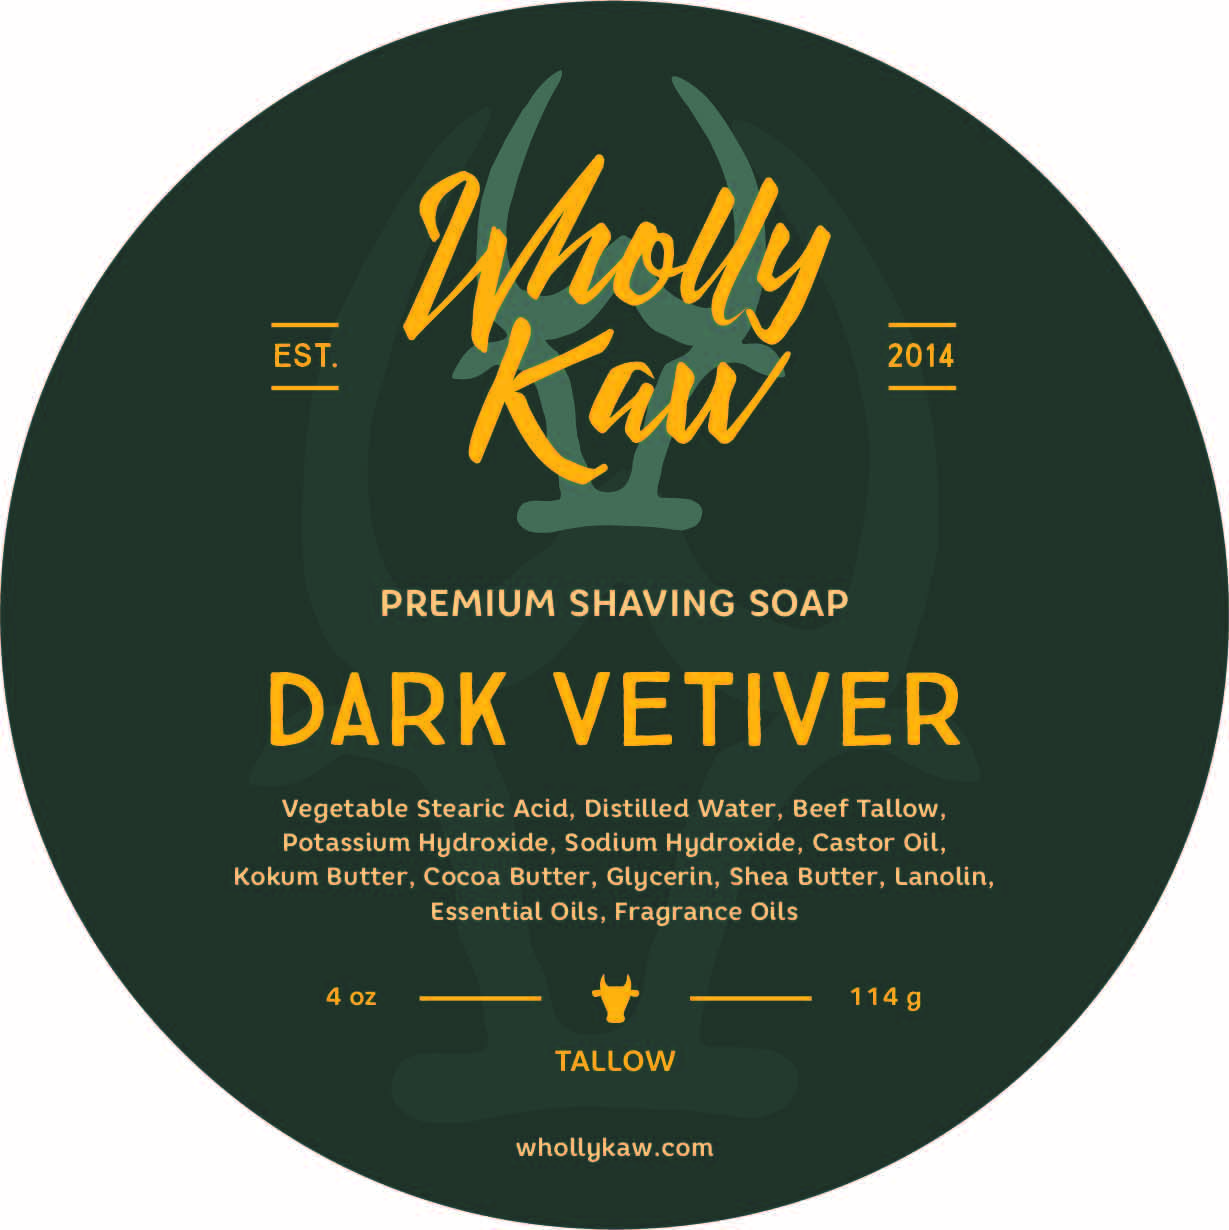 Wholly Kaw - Dark Vetiver - Soap image